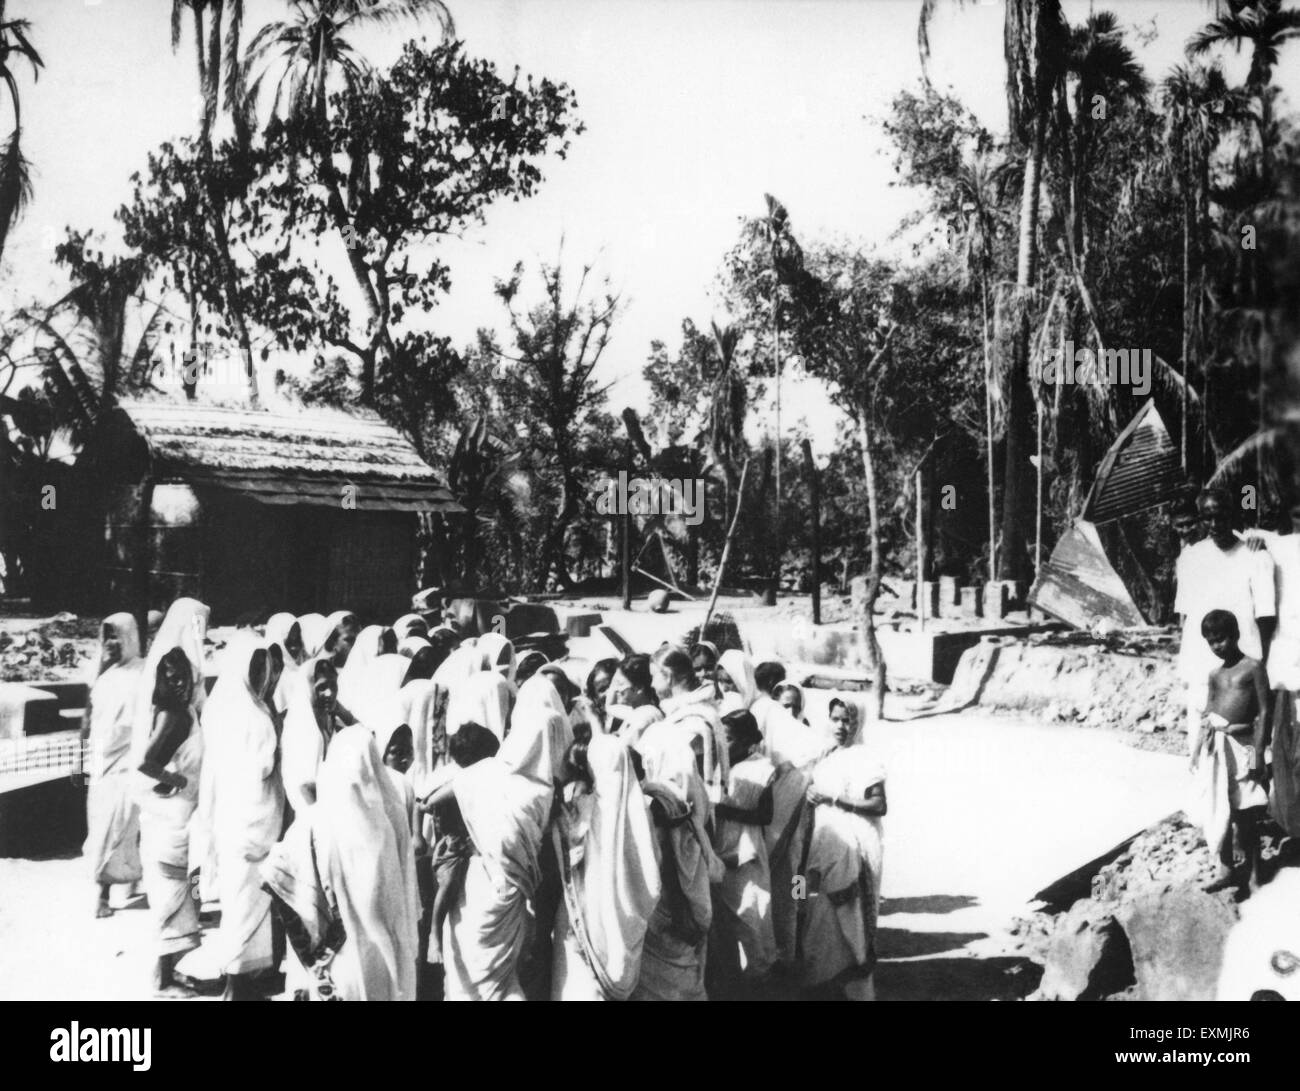 A group of crying women waiting to meet Mahatma Gandhi after the riots between Hindus and Muslims in Noakhali East - Stock Image